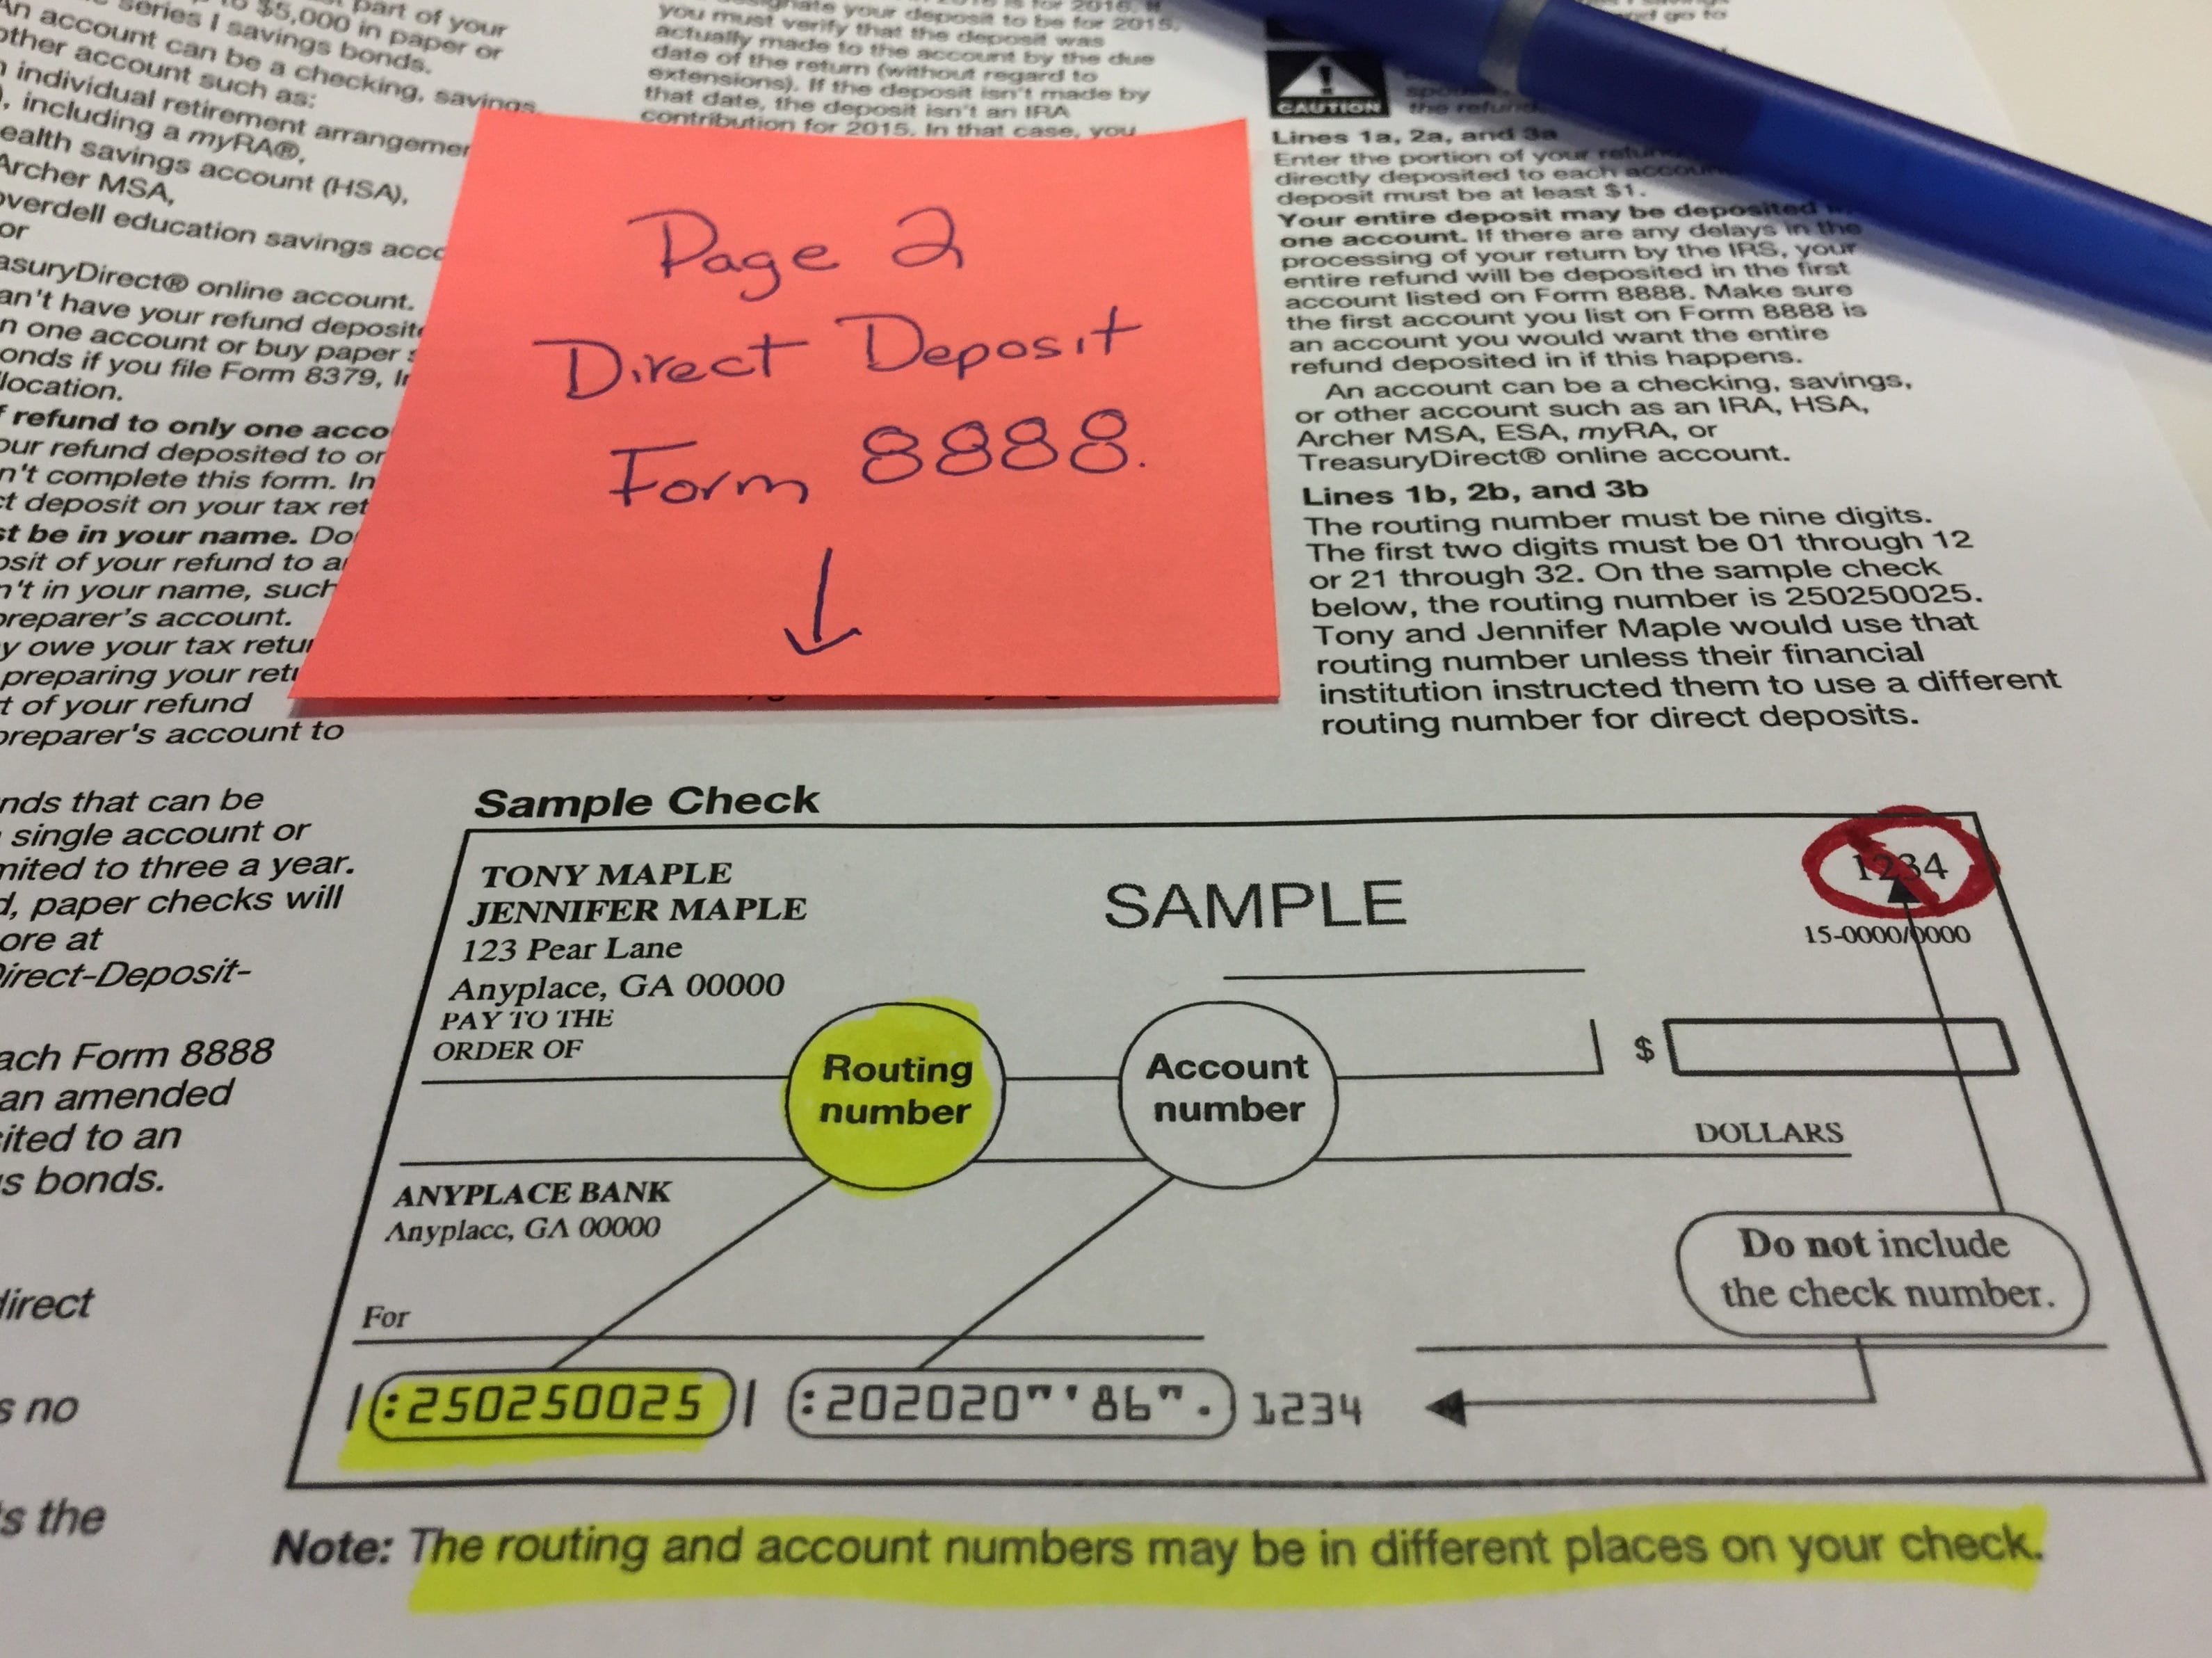 Direct deposit for tax refunds can go very wrong